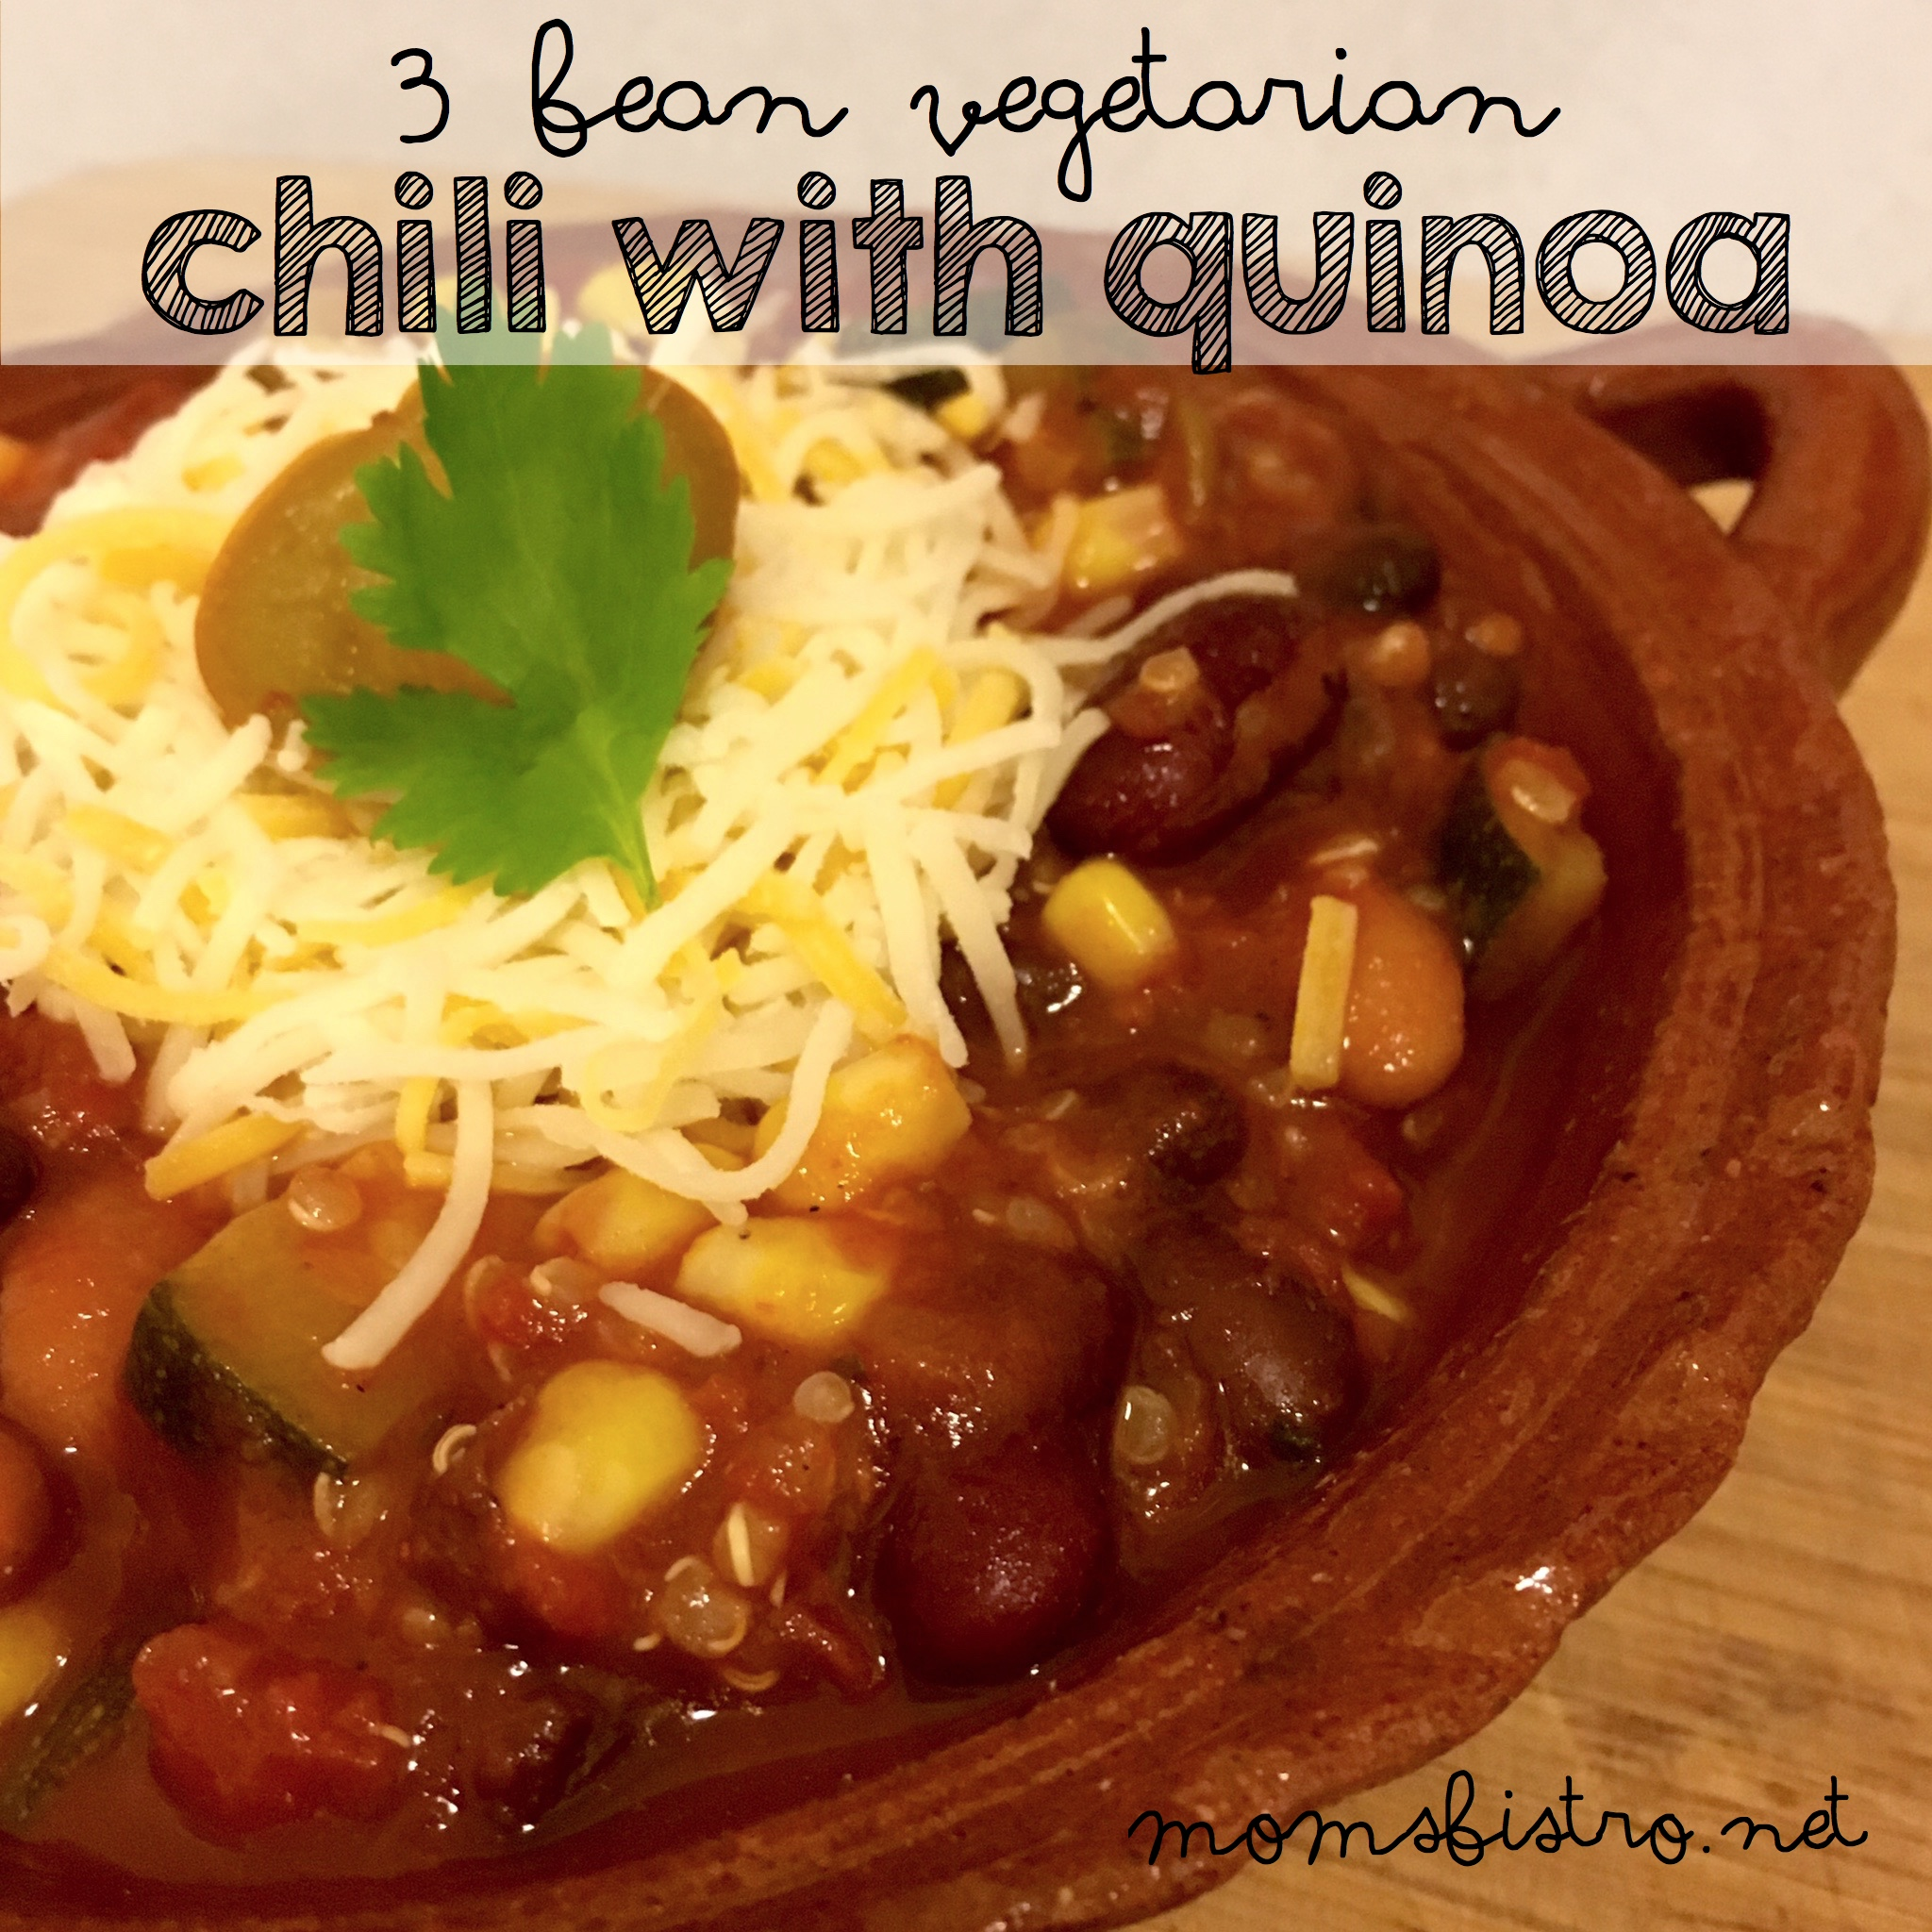 Meatless Monday's Never Tasted So Good!  Easy Kid-Friendly 3 Bean Vegetarian Chili Recipe with Quinoa